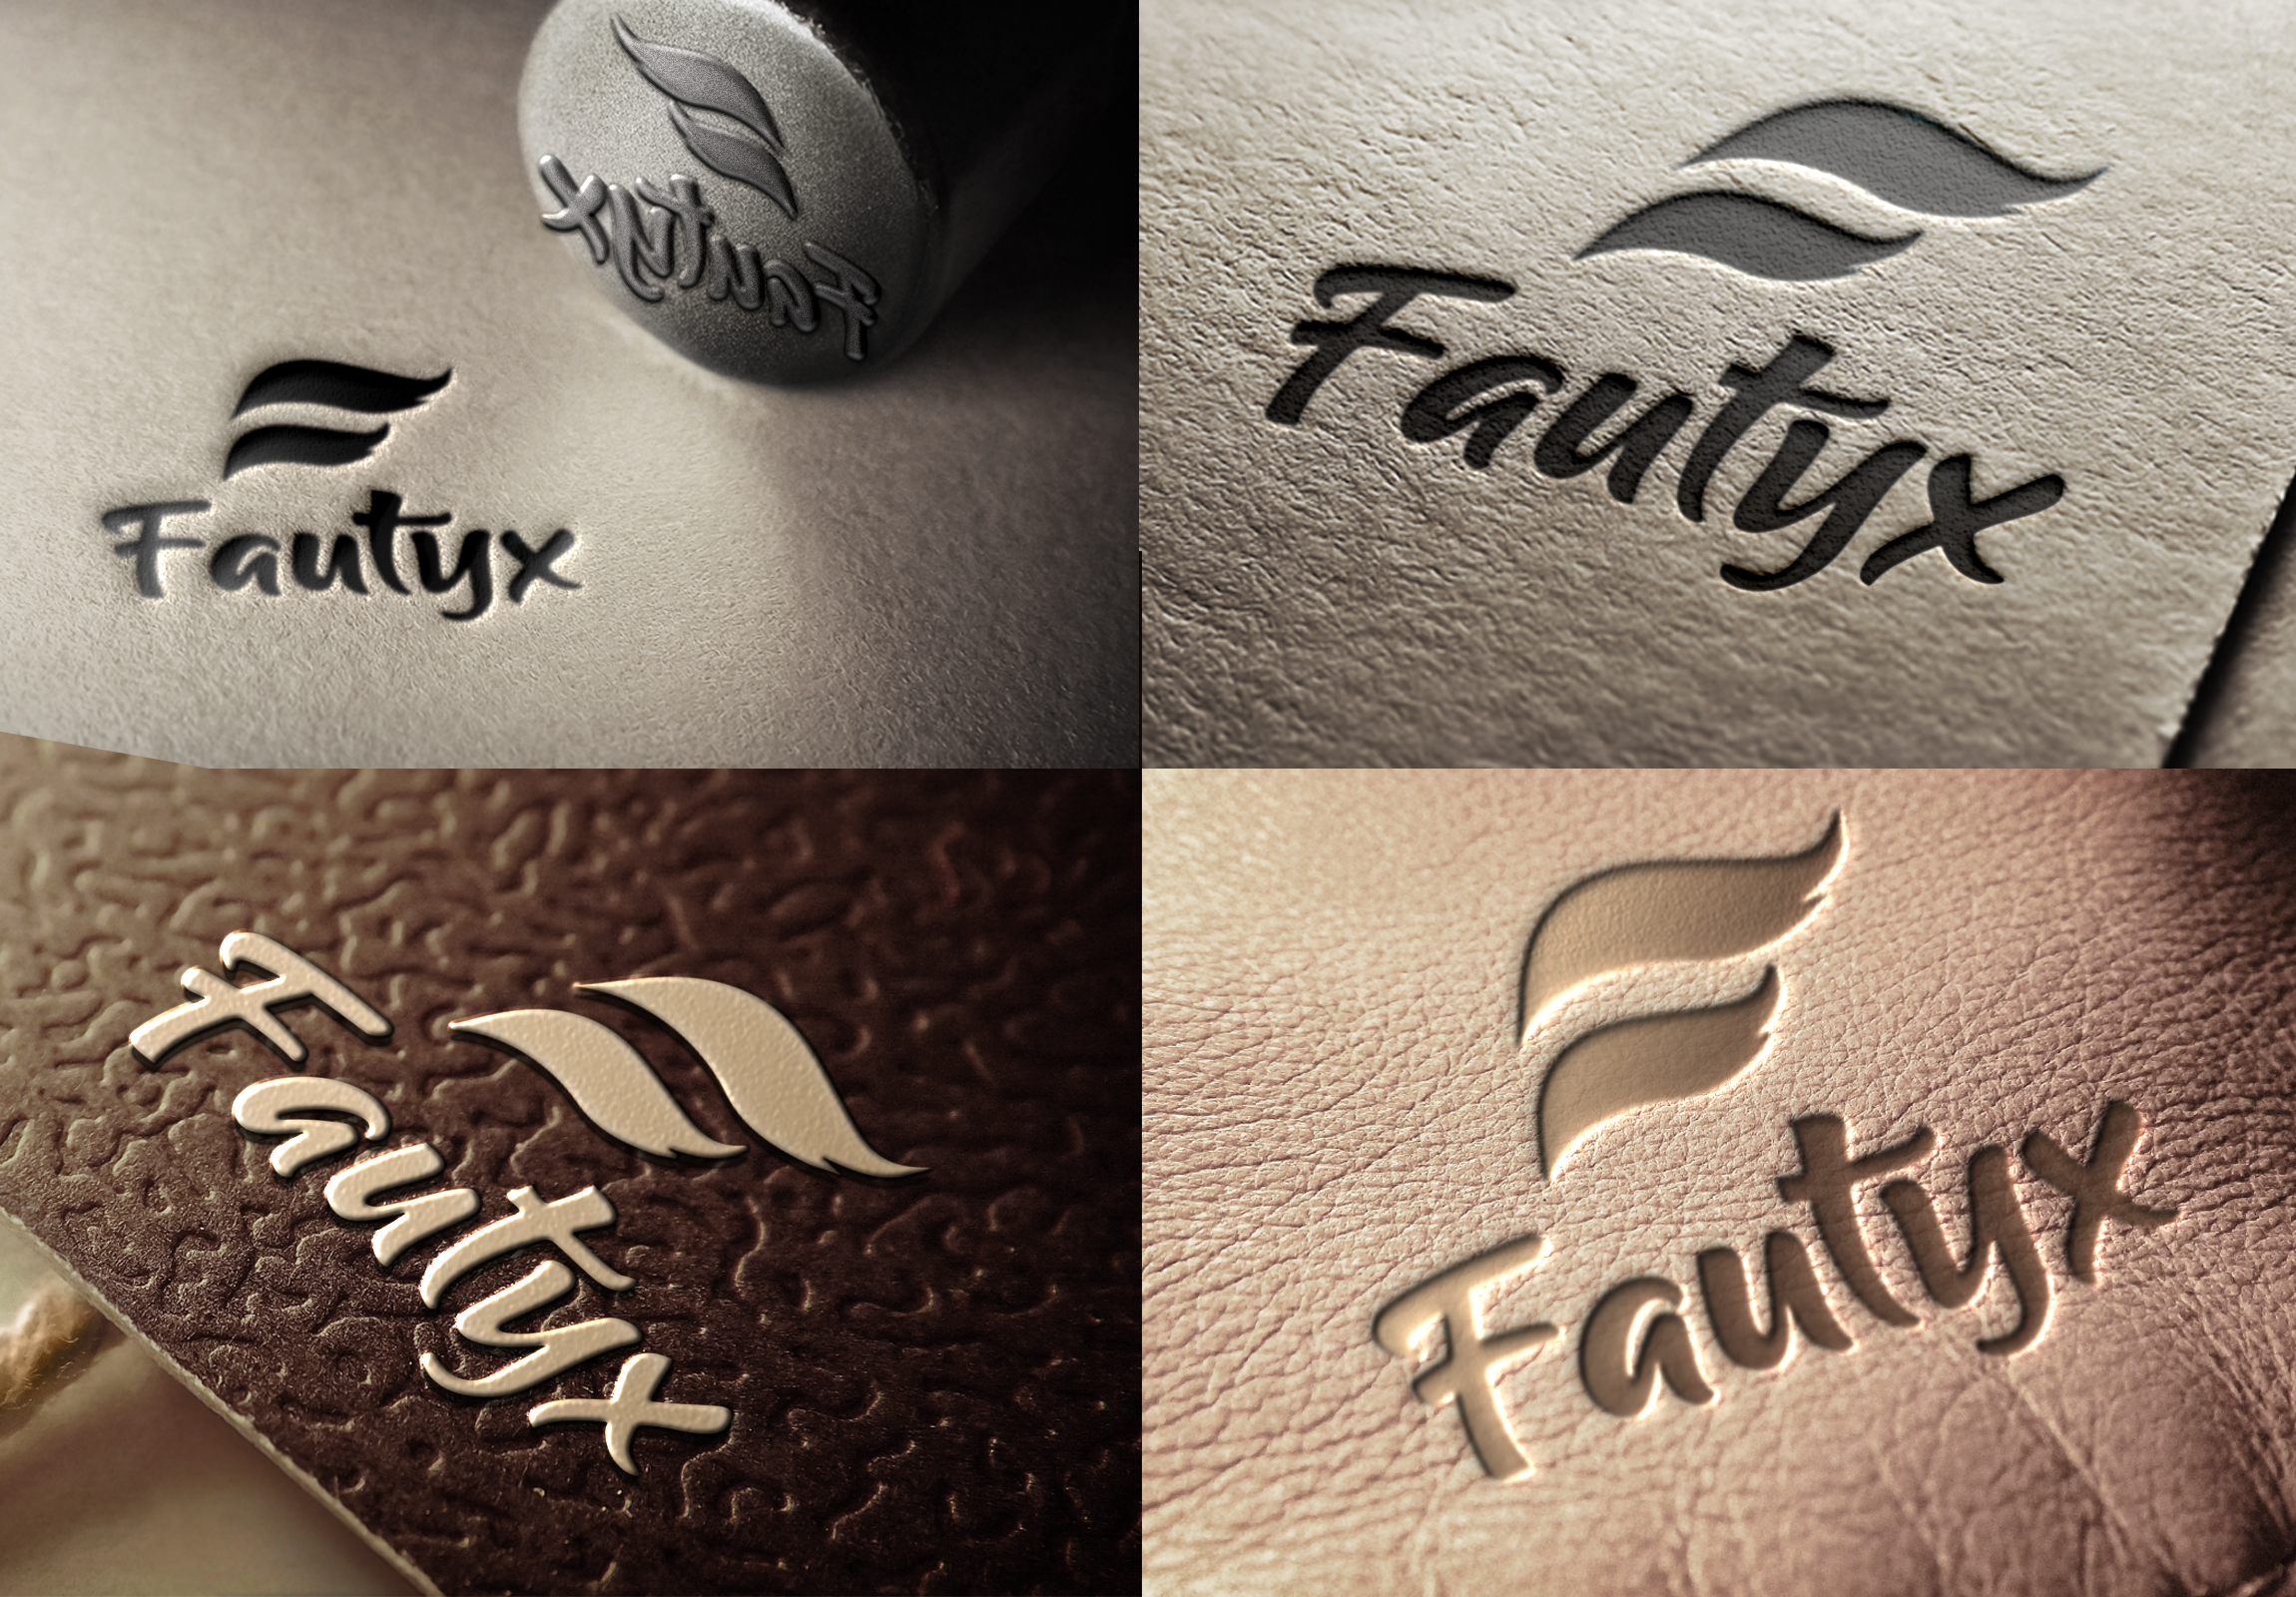 Iwill create an epic Photorealistic 3d logo mockups